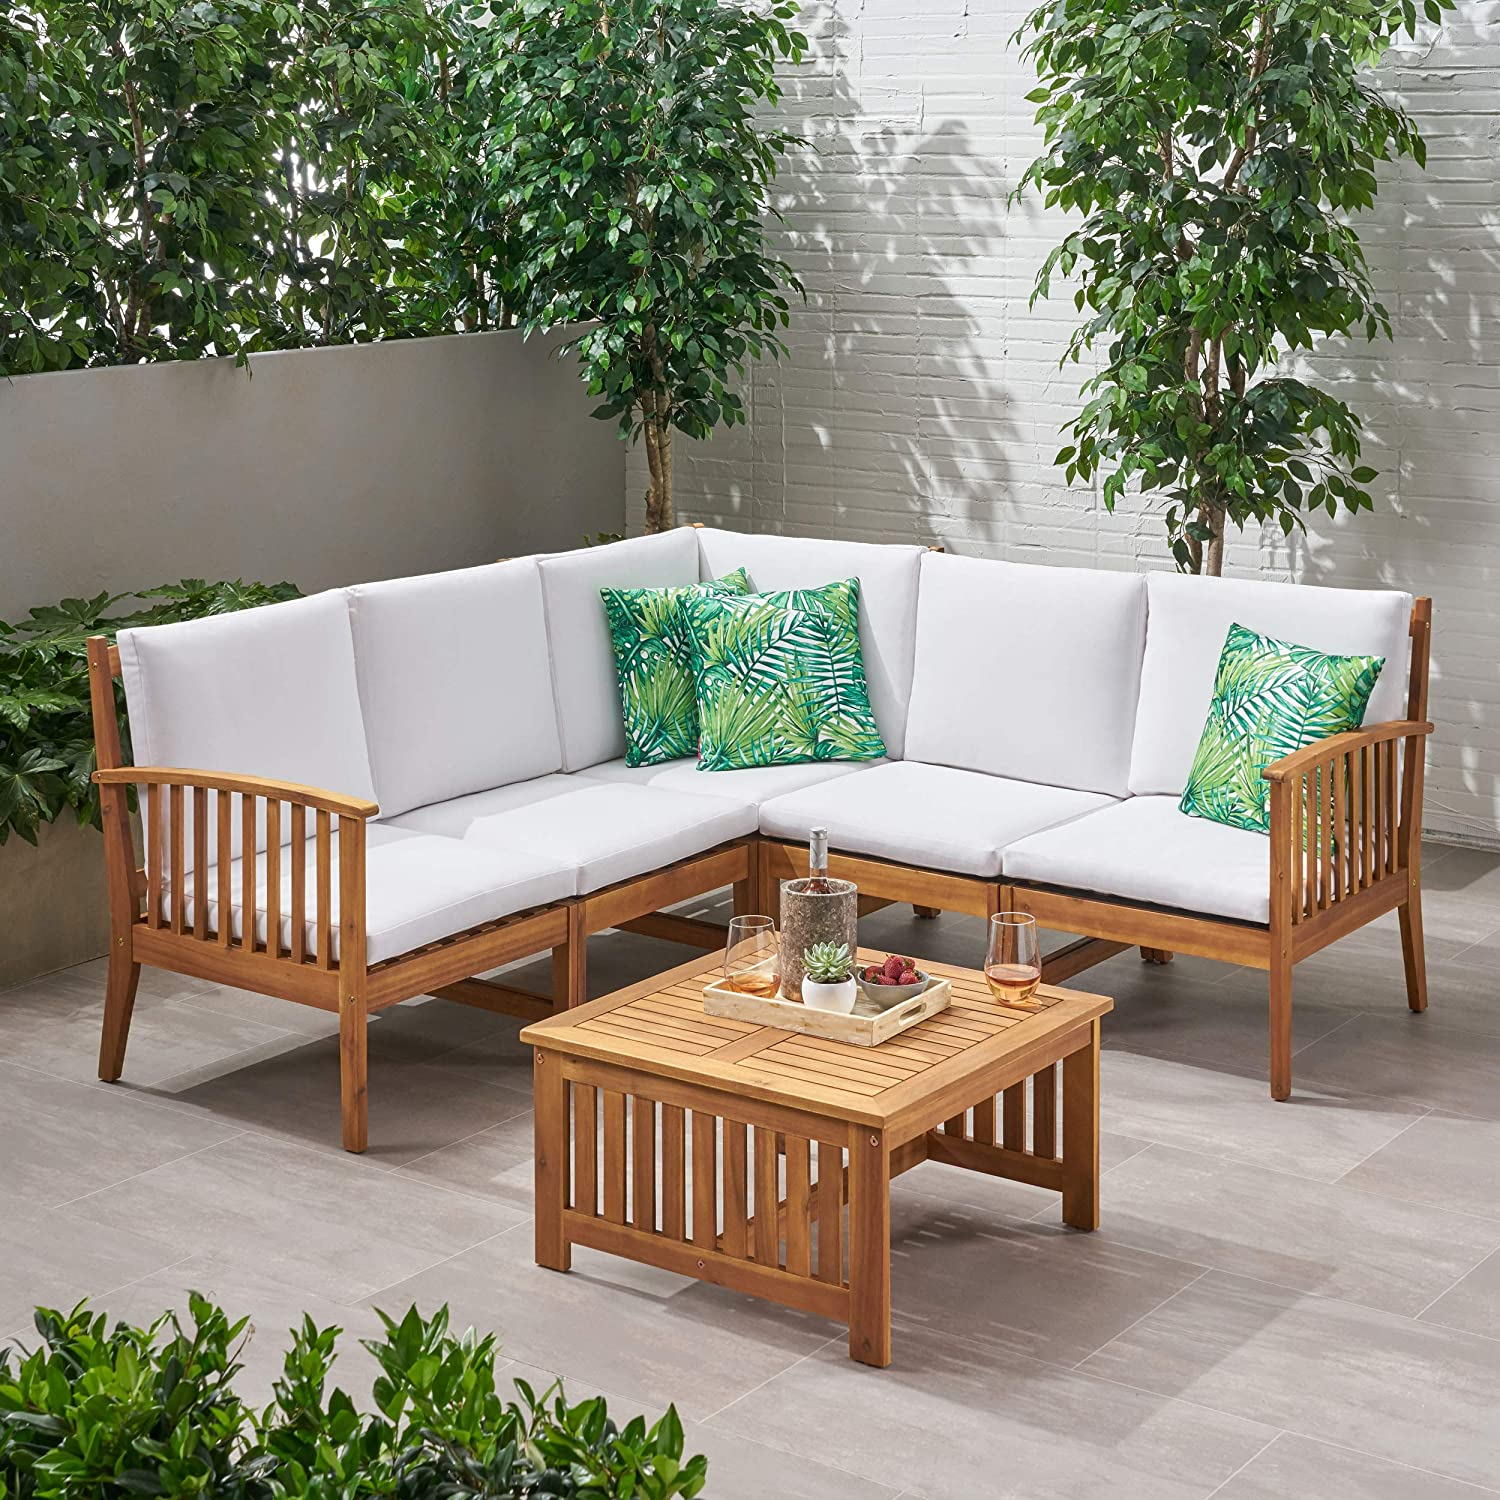 Amazon.com: Maud Outdoor 5 Seater Acacia Wood Sofa Sectional ...